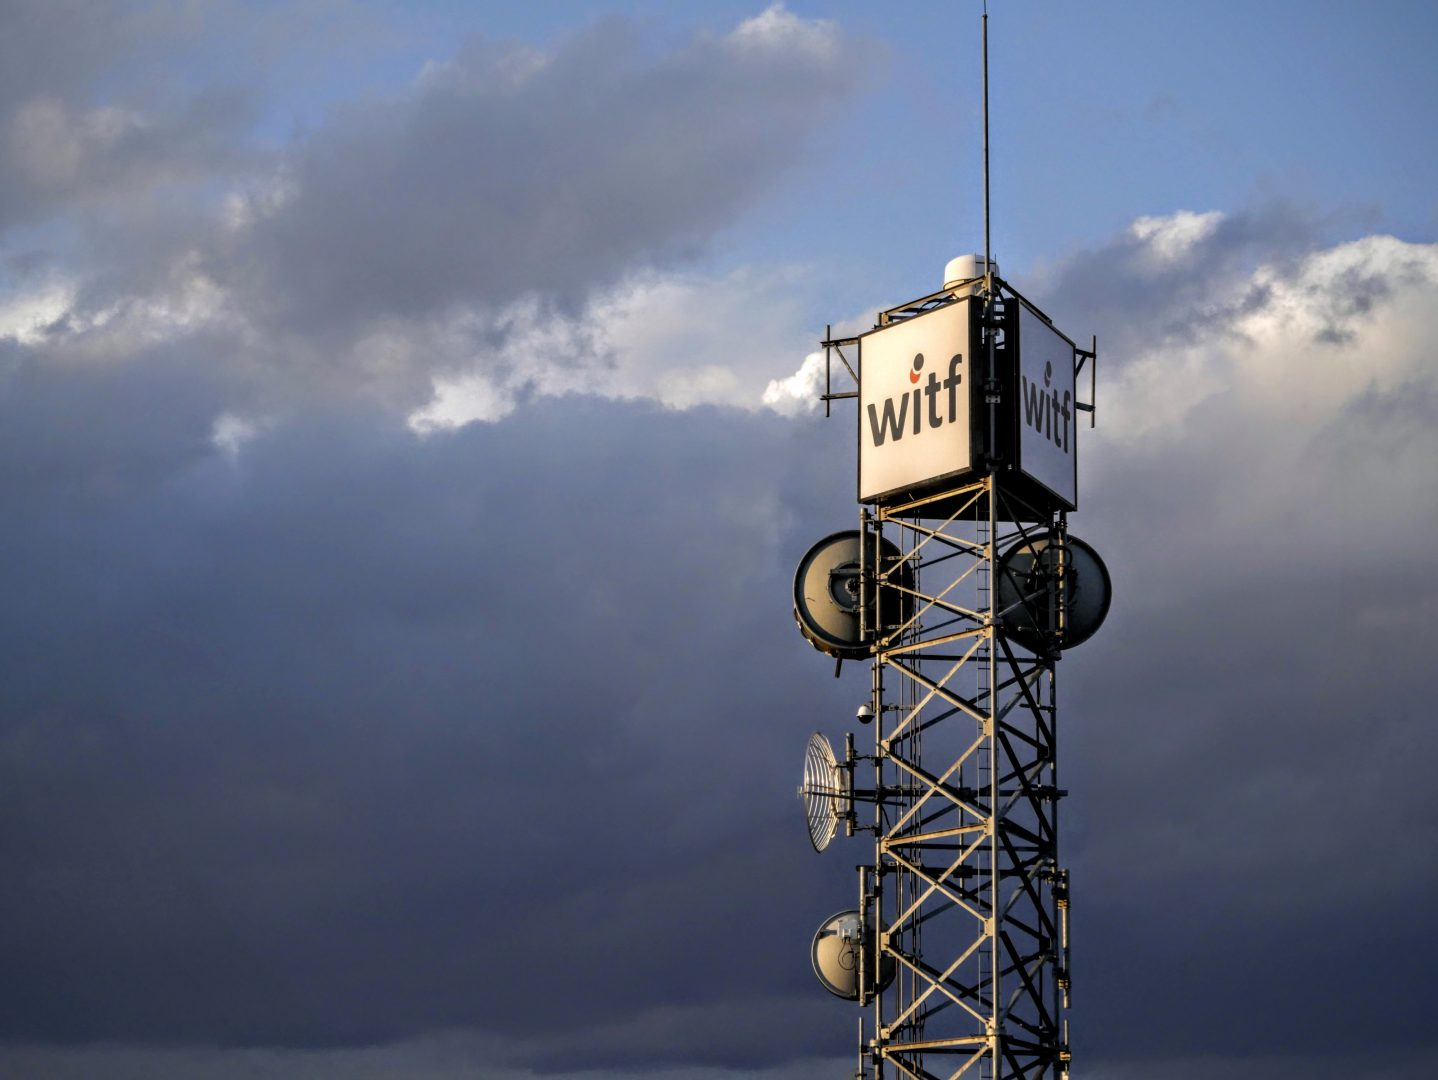 WITF Tower